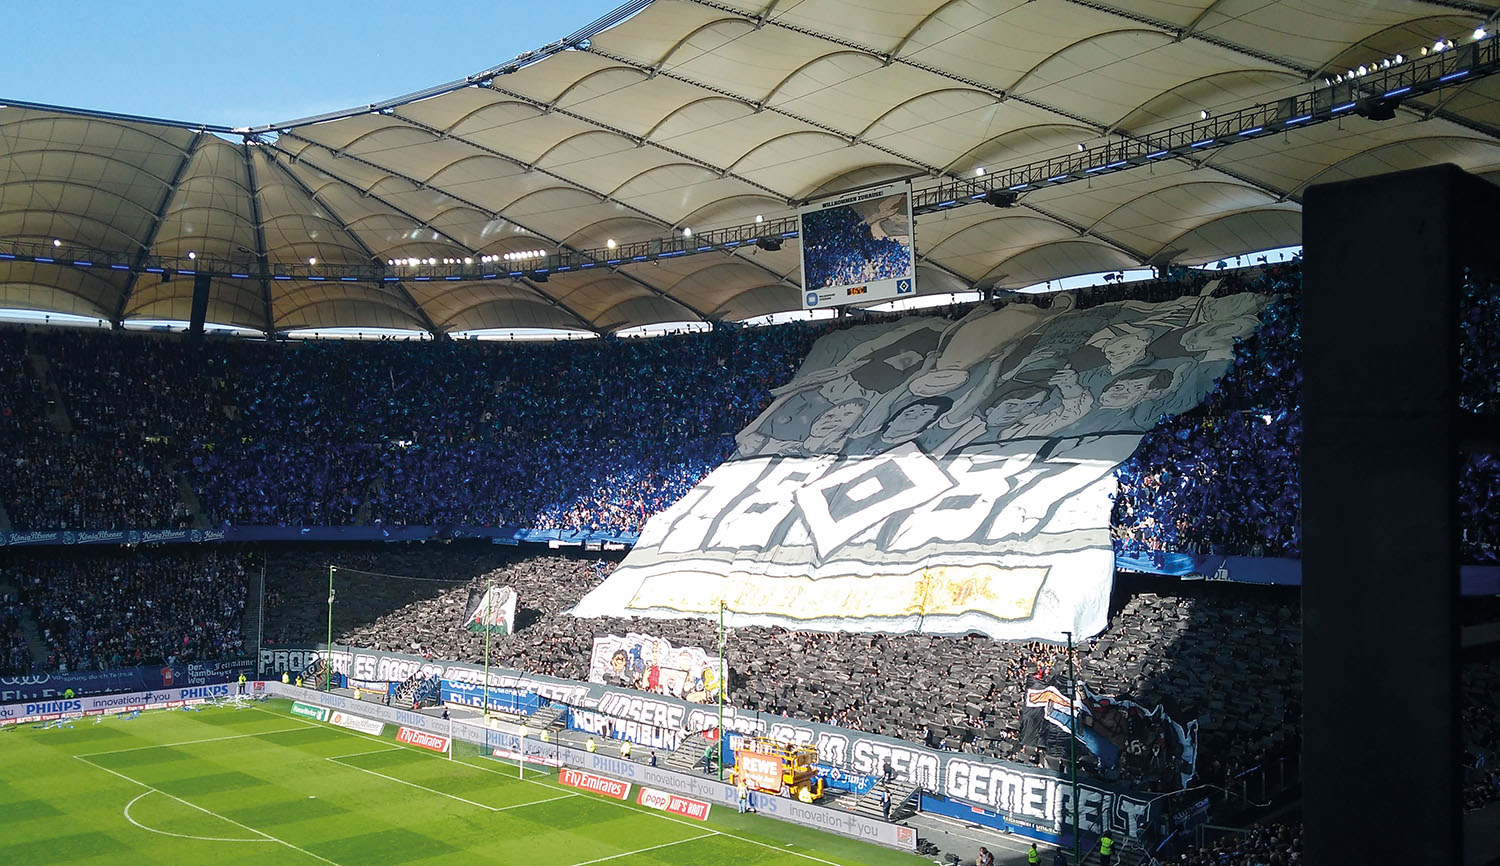 The Volksparkstadion in Hamburg is ready for the Hamburg derby